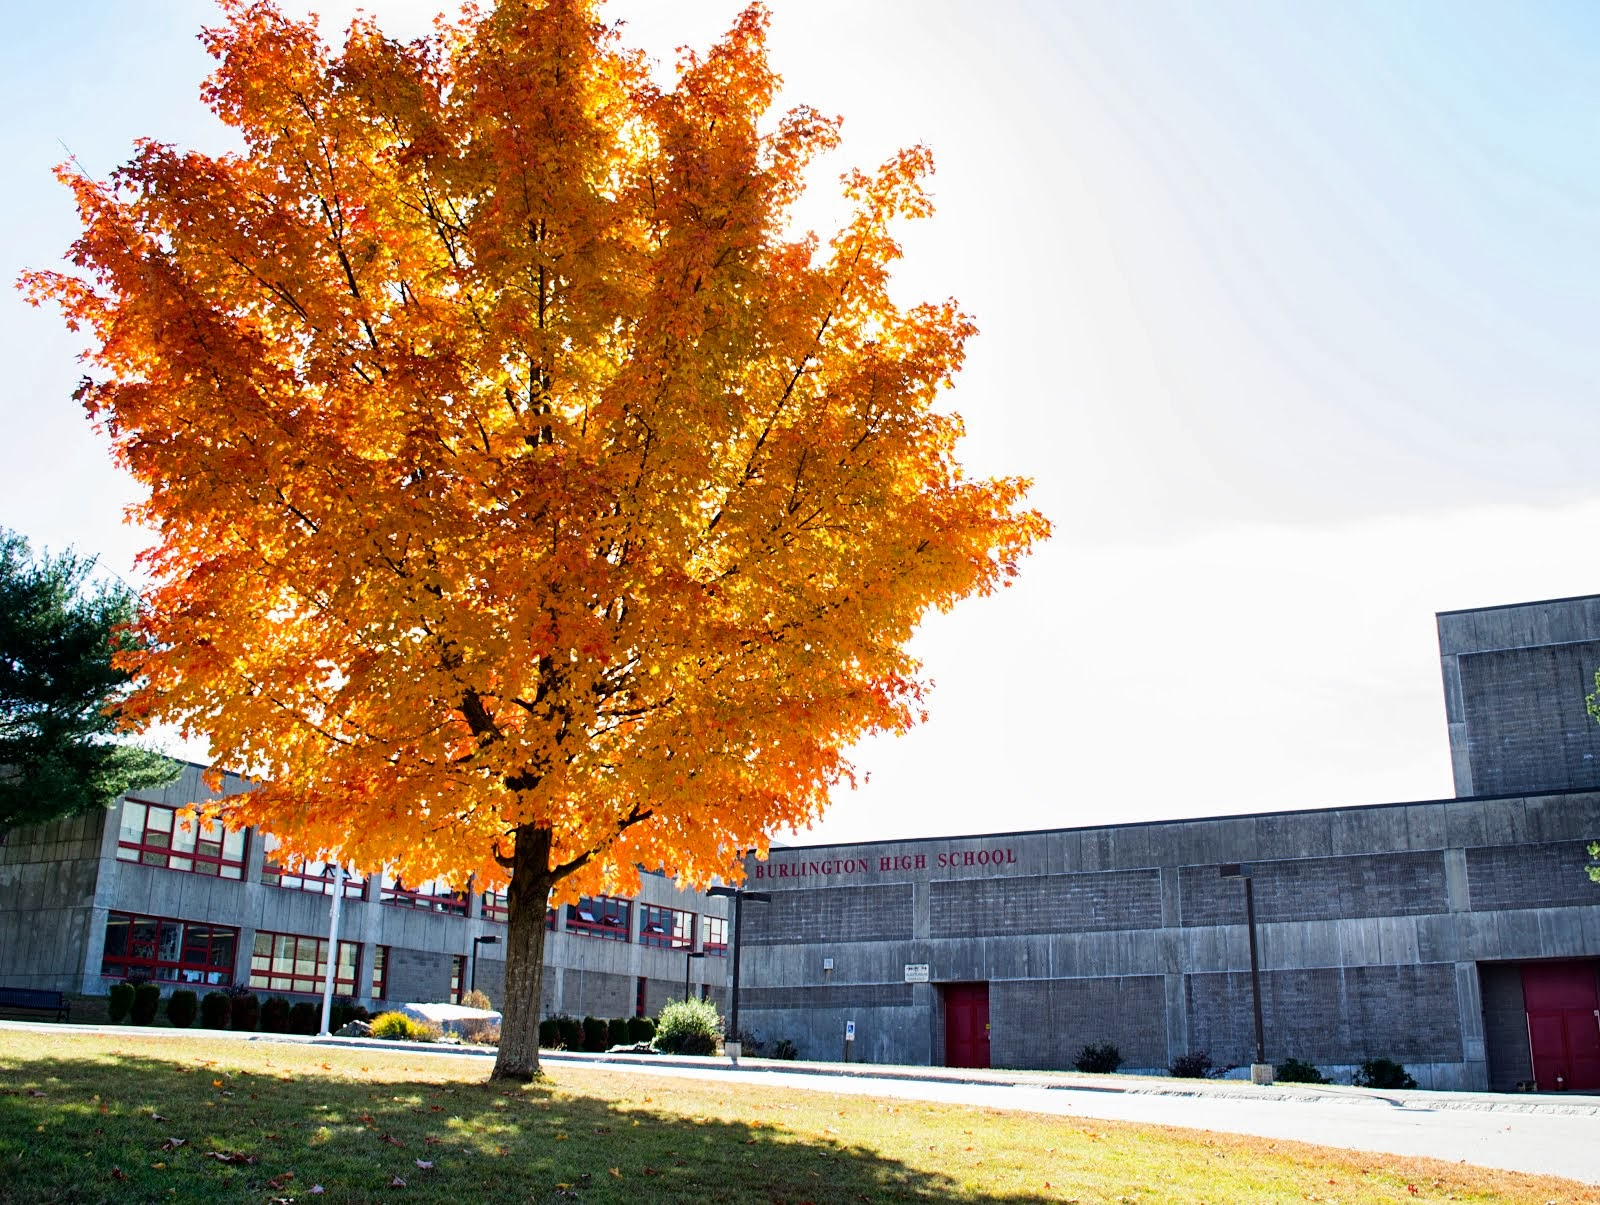 BHS in the Fall